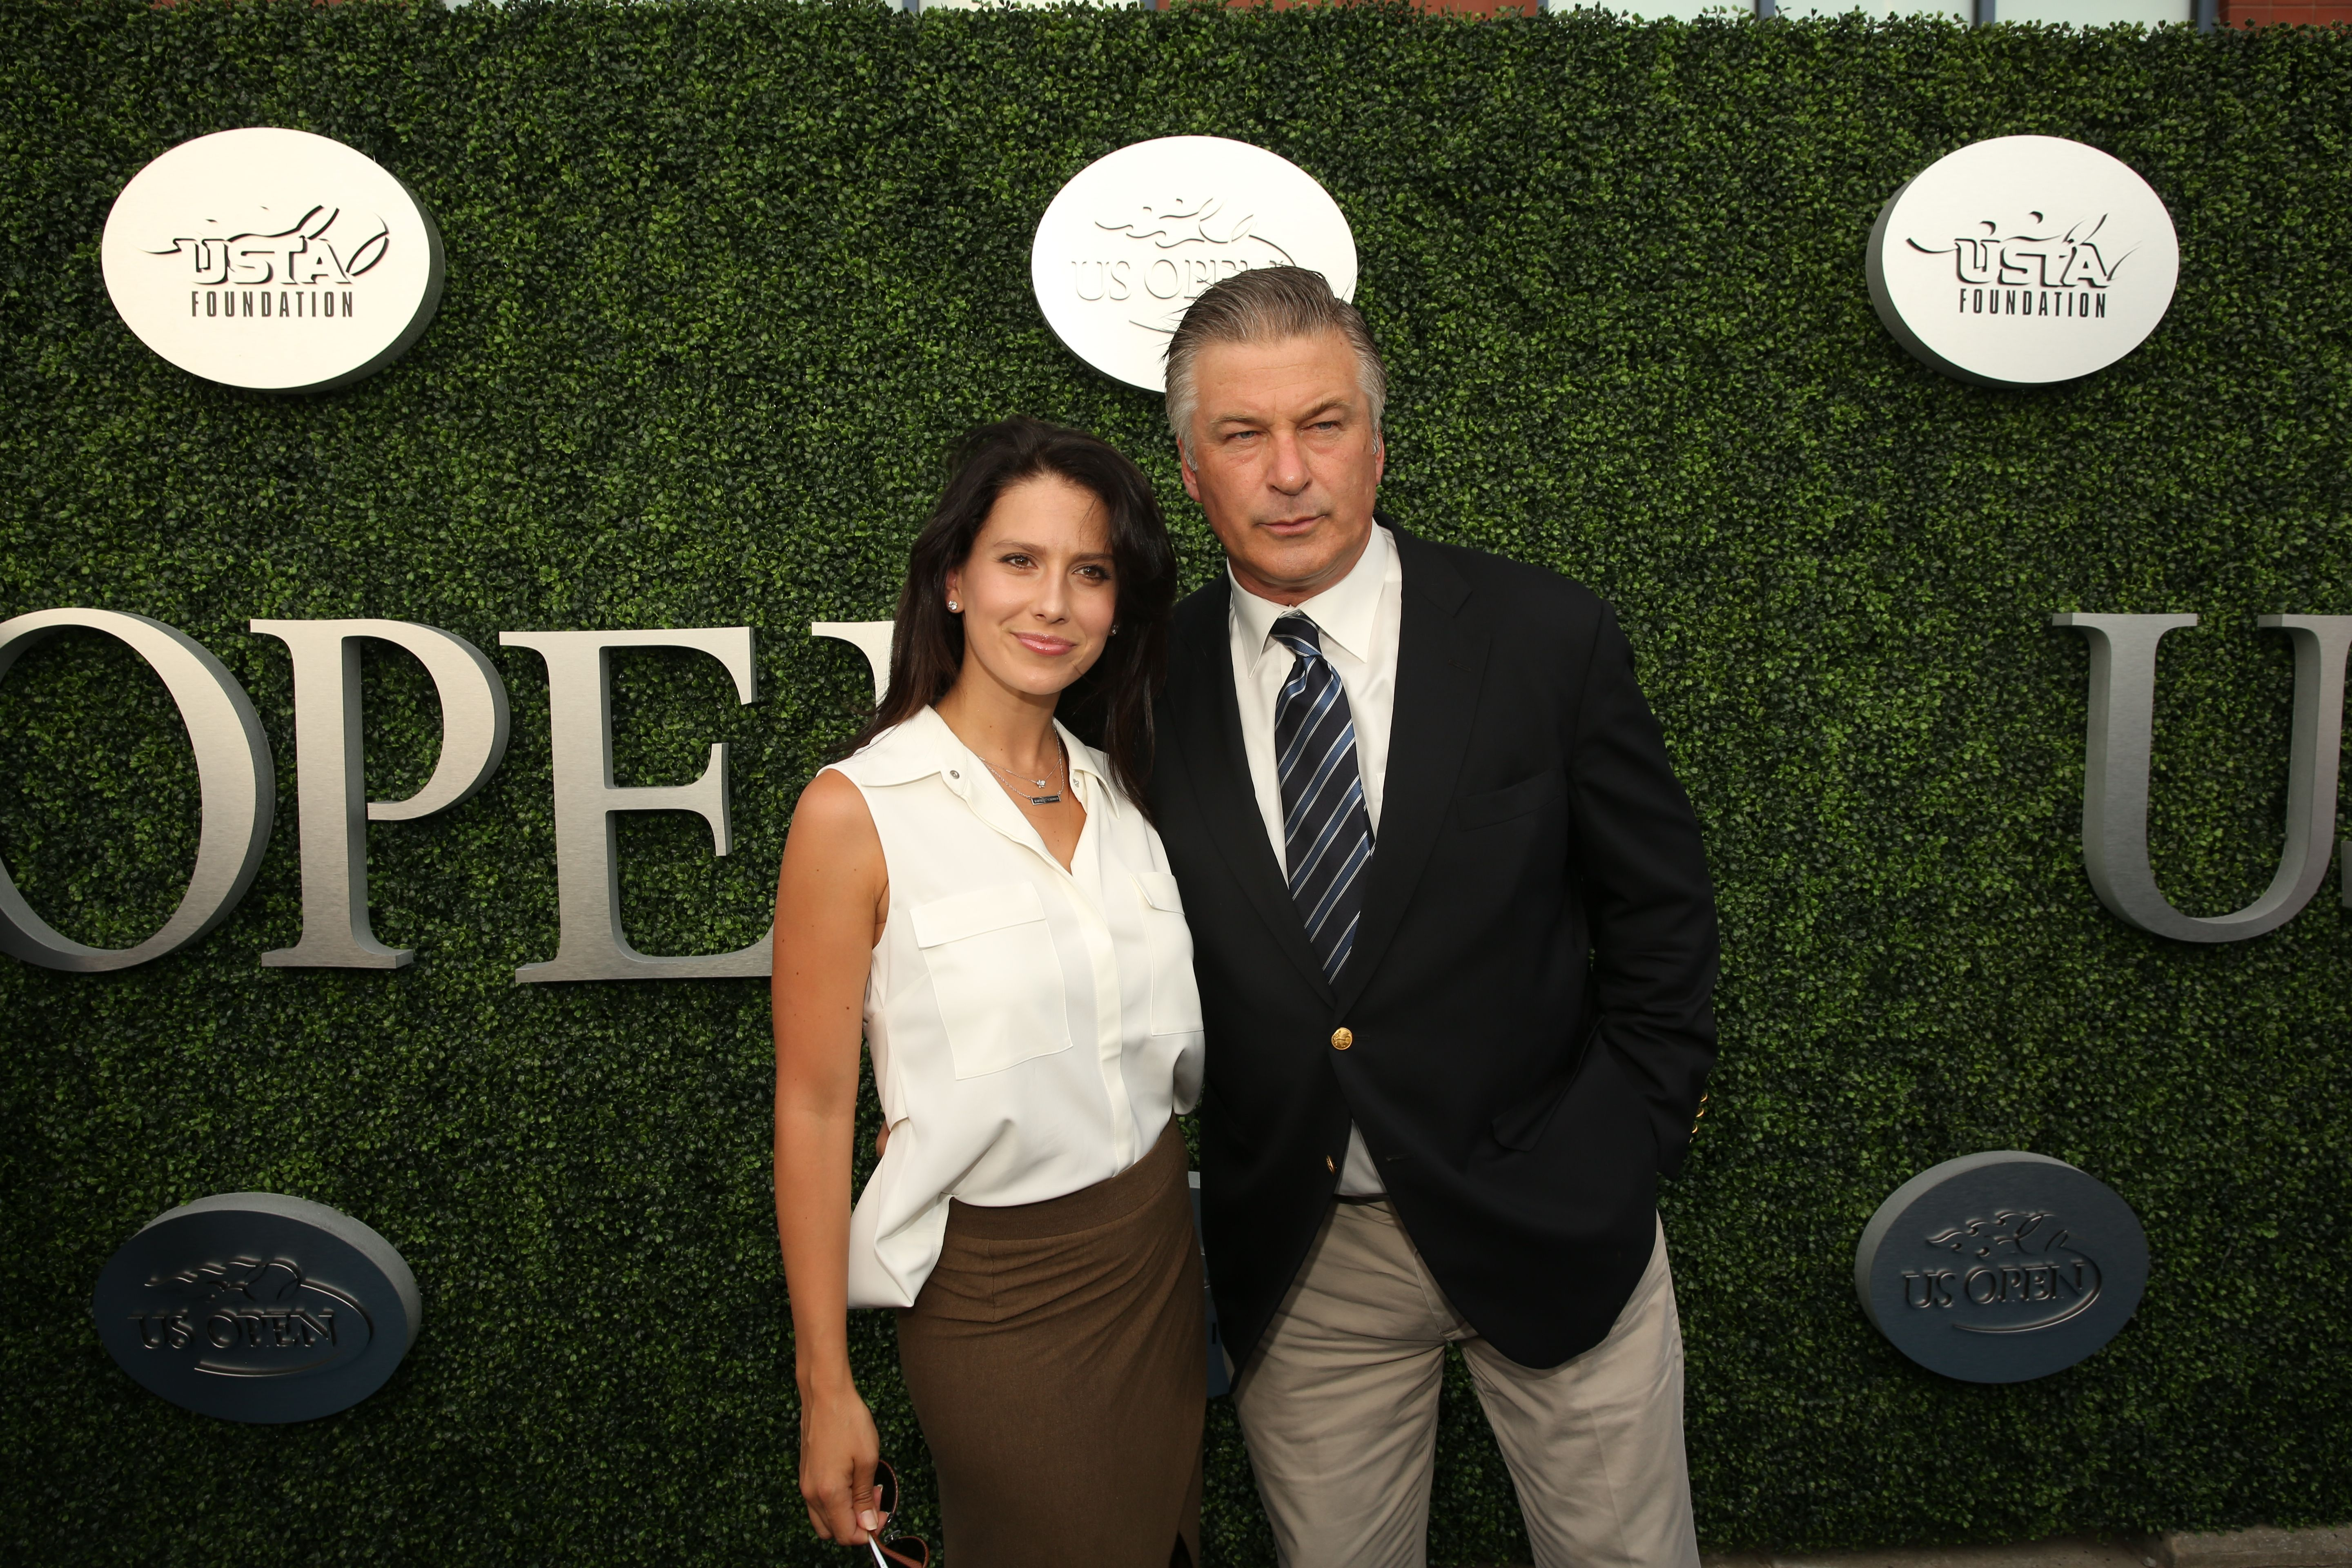 Alec Baldwin and wife Hilaria arrive on the Blue Carpet for Opening Night